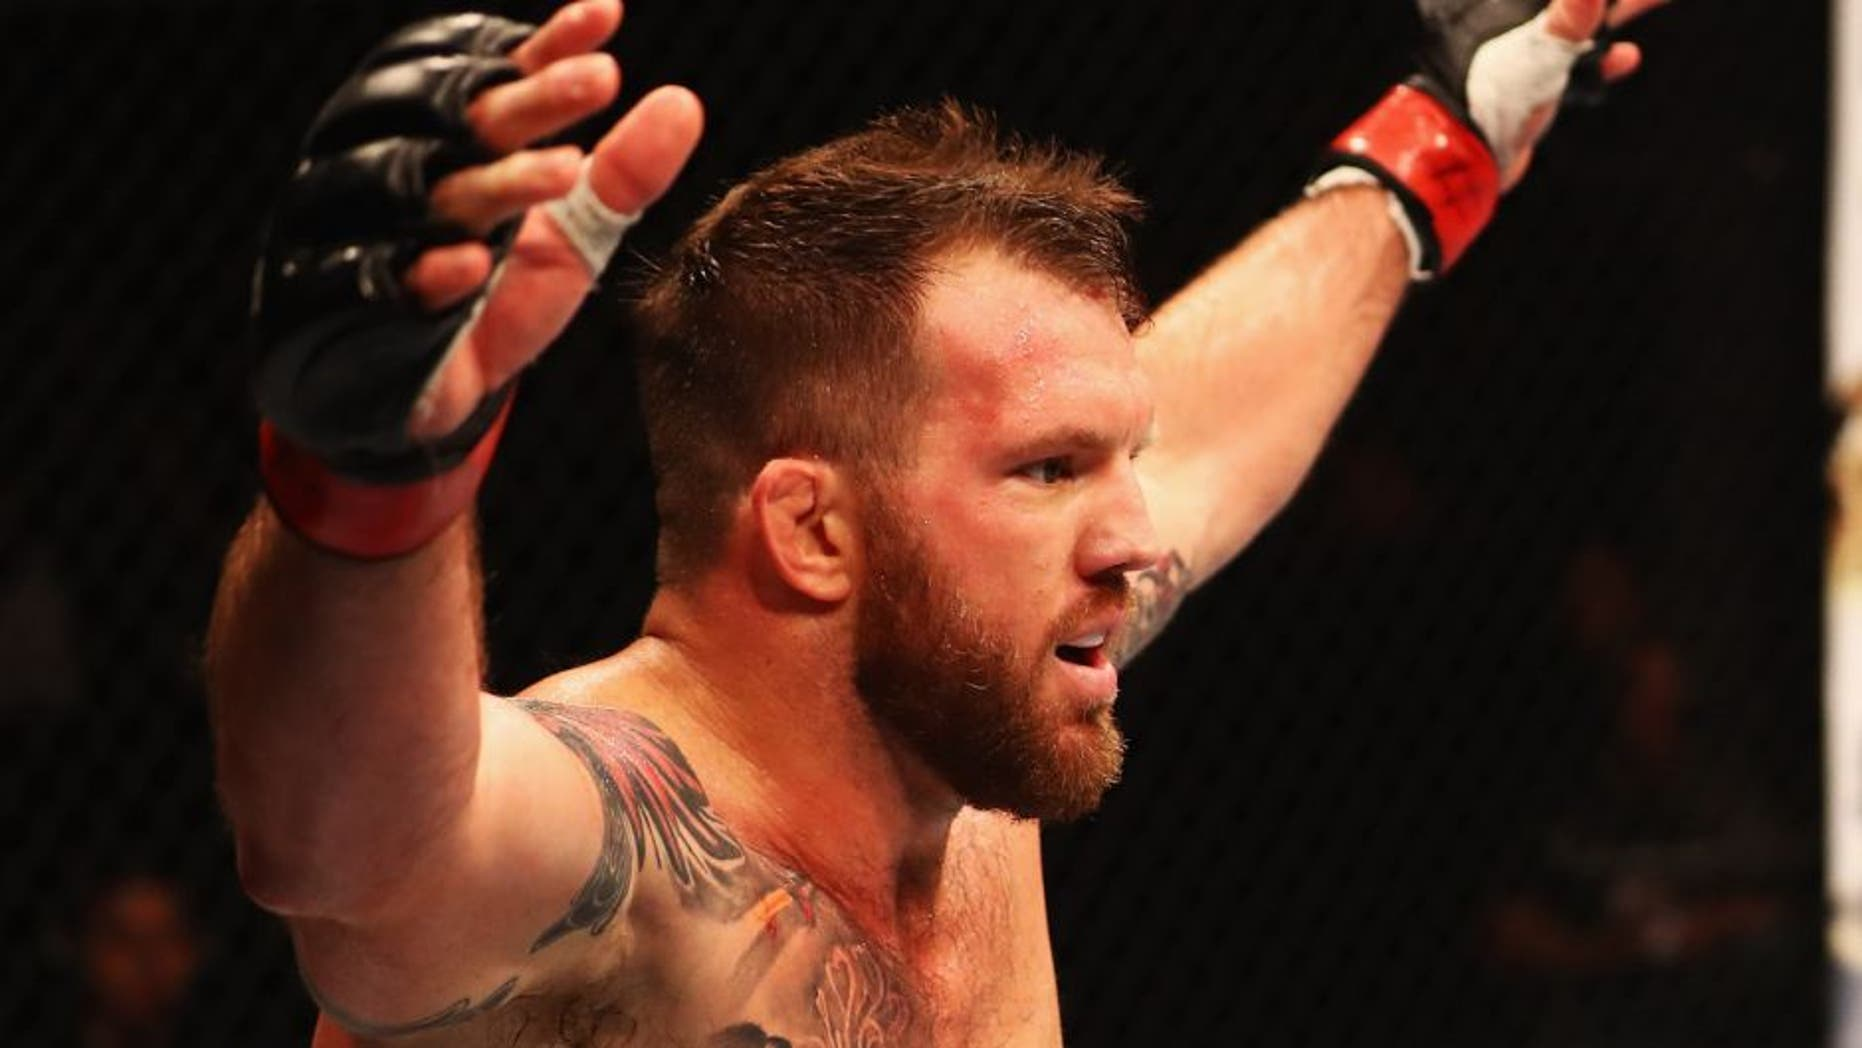 HAMBURG, GERMANY - SEPTEMBER 03: Ryan Bader of the USA celebrates his knockout victory over Ilir Latifi of Sweden in their Light Heavyweight Bout during the UFC Fight Night held at Barclaycard Arena on September 3, 2016 in Hamburg, Germany. (Photo by Dean Mouhtaropoulos/Zuffa LLC/Zuffa LLC via Getty Images)